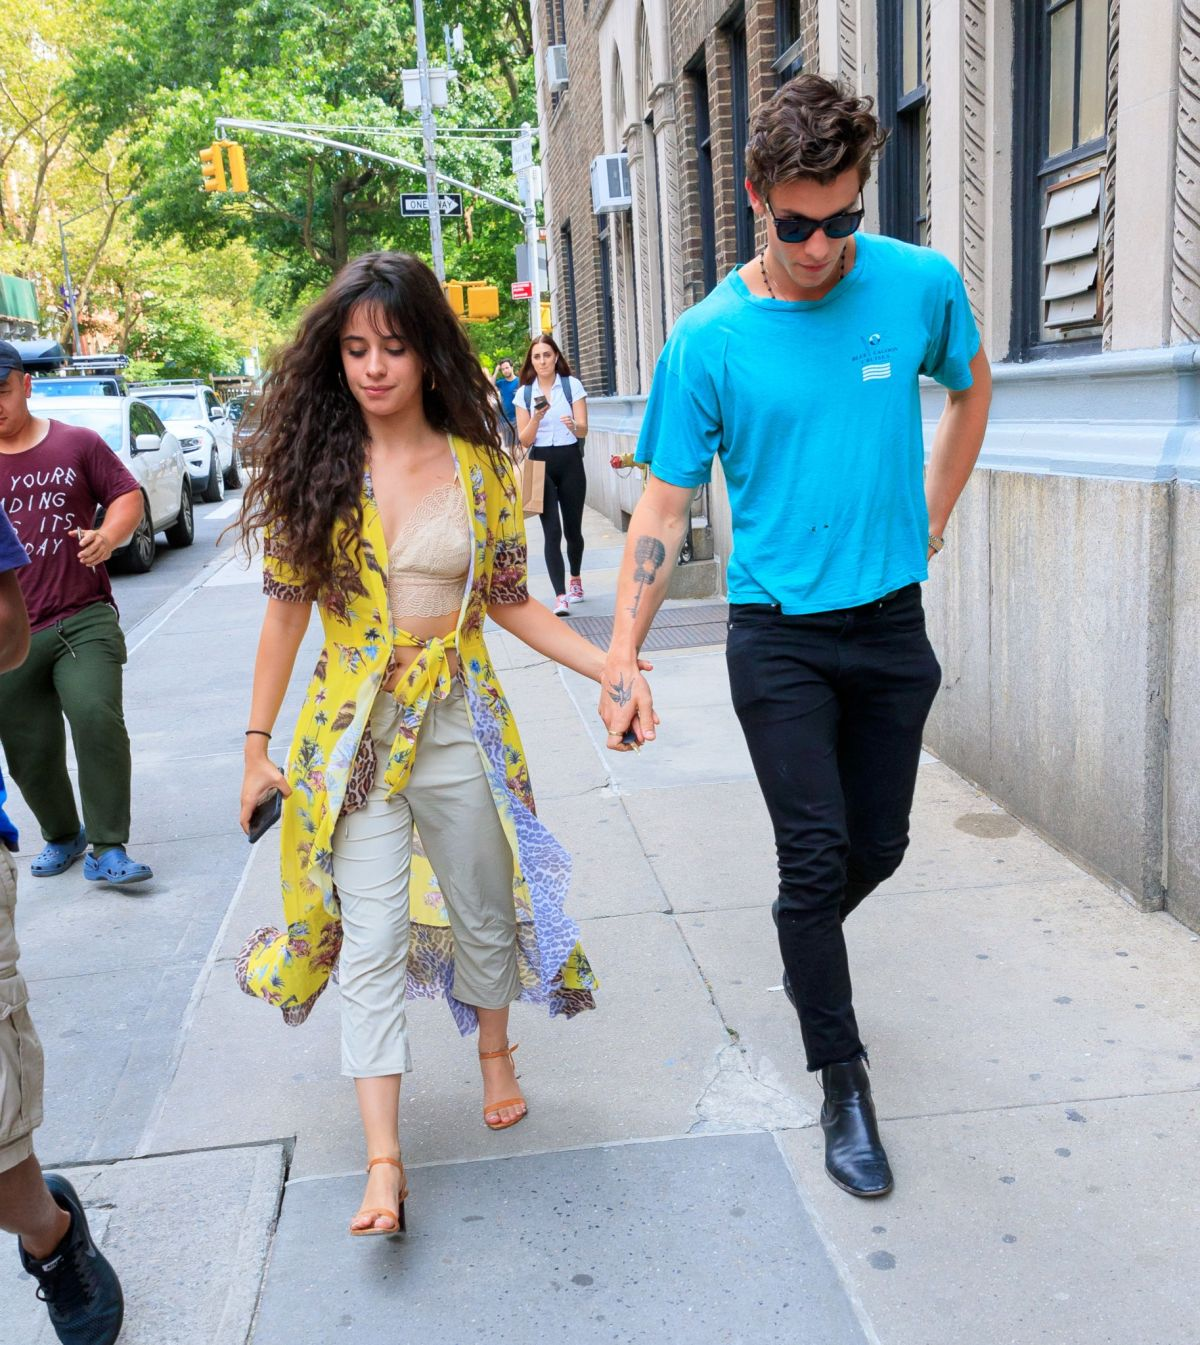 New York New York City: Camila Cabello & Shawn Mendes Seen Out And About In